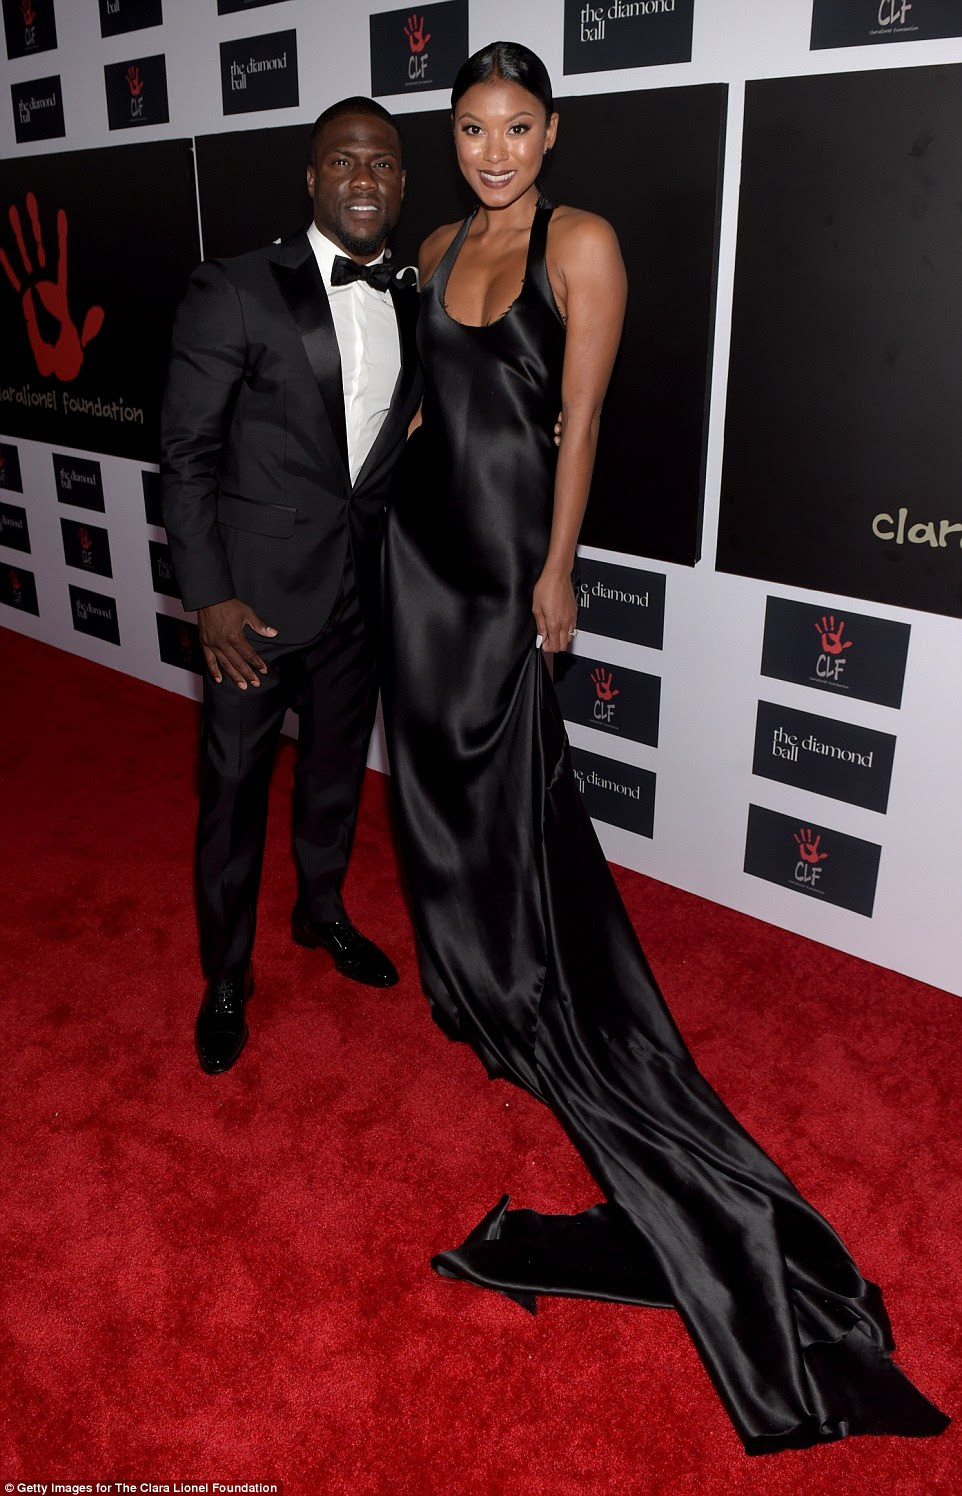 Engaged: Comedian Kevin Hart was accompanied by his finance Eniko Parrish, who looked stunning in a black gown with distressed train